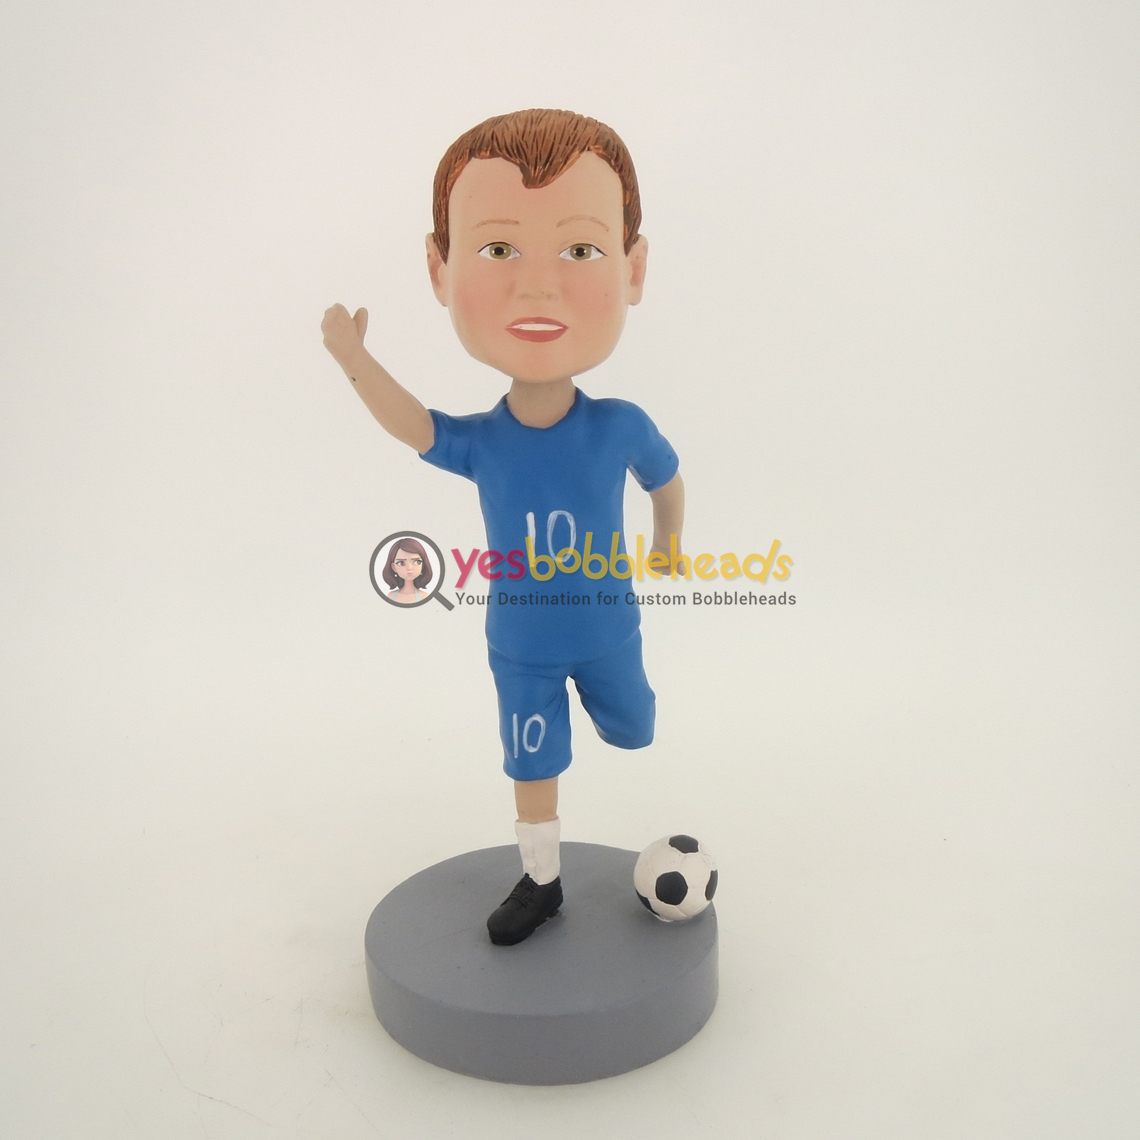 Picture of Custom Bobblehead Doll: Boy Playing Soccer